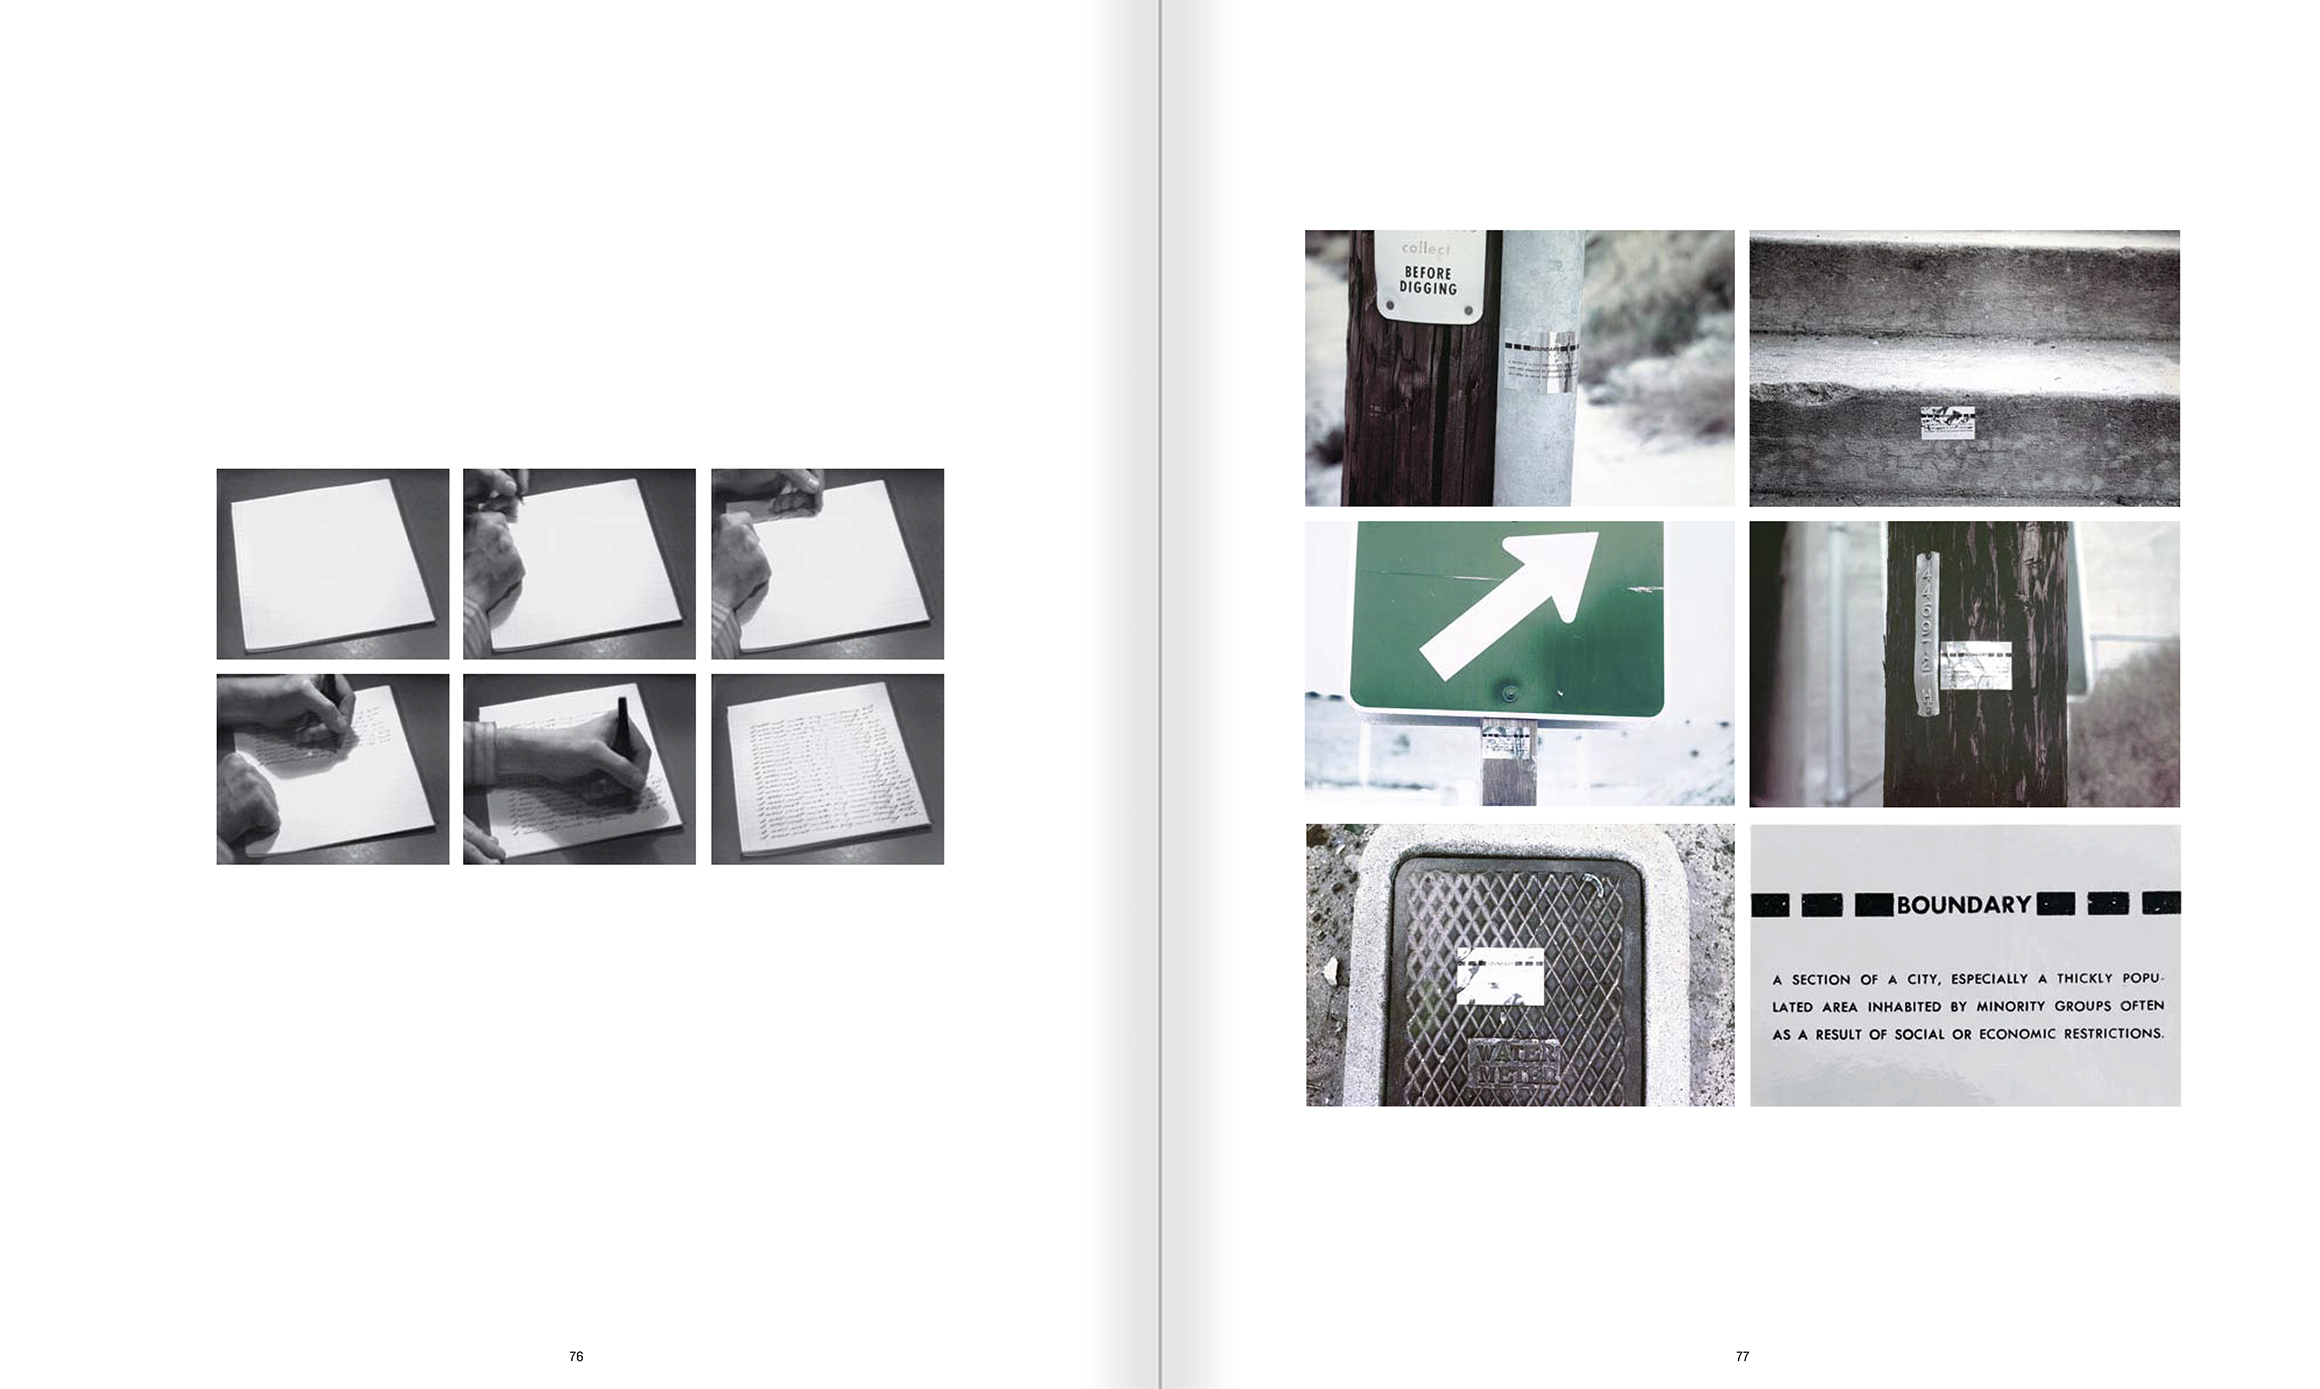 Selection from the catalogue 'John Baldessari. Pure Beauty', pages 76 and 77